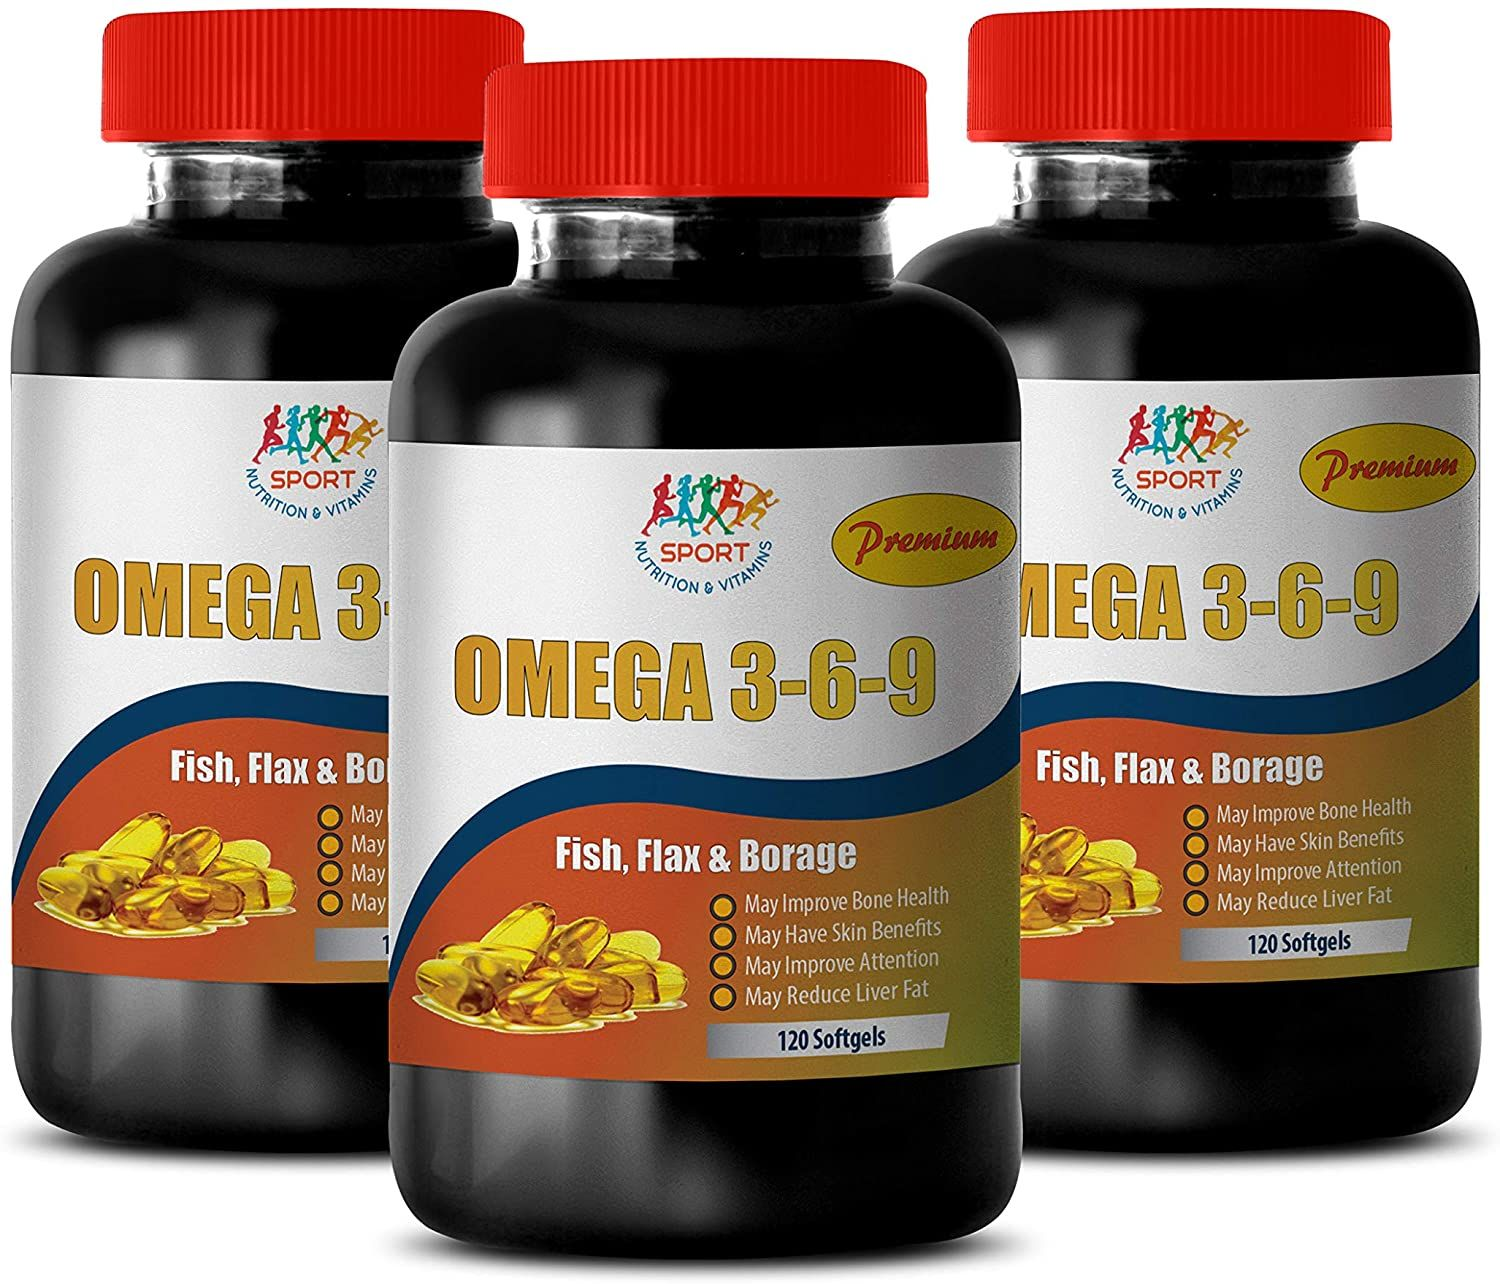 Inflammation Supplements For Women Omega 3 6 9 Premium Fish Flax Borage Omega Su In 2020 Reduce Cholesterol Naturally Omega Supplement Healthy Cholesterol Levels